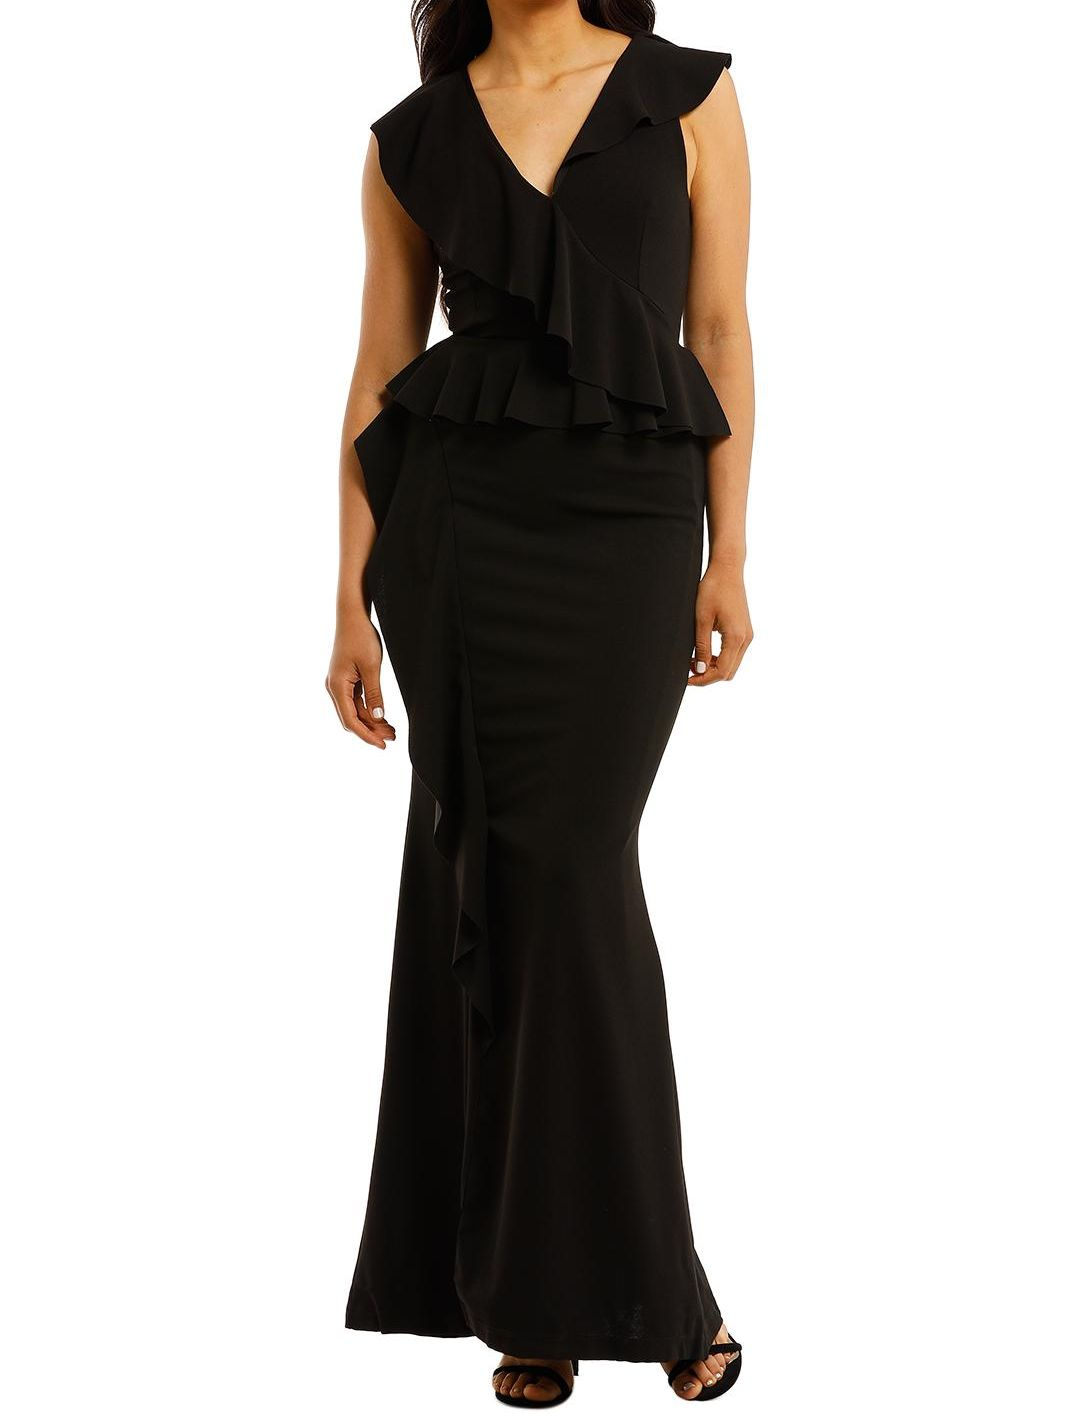 pasduchas_verve_gown_black_sleeveless